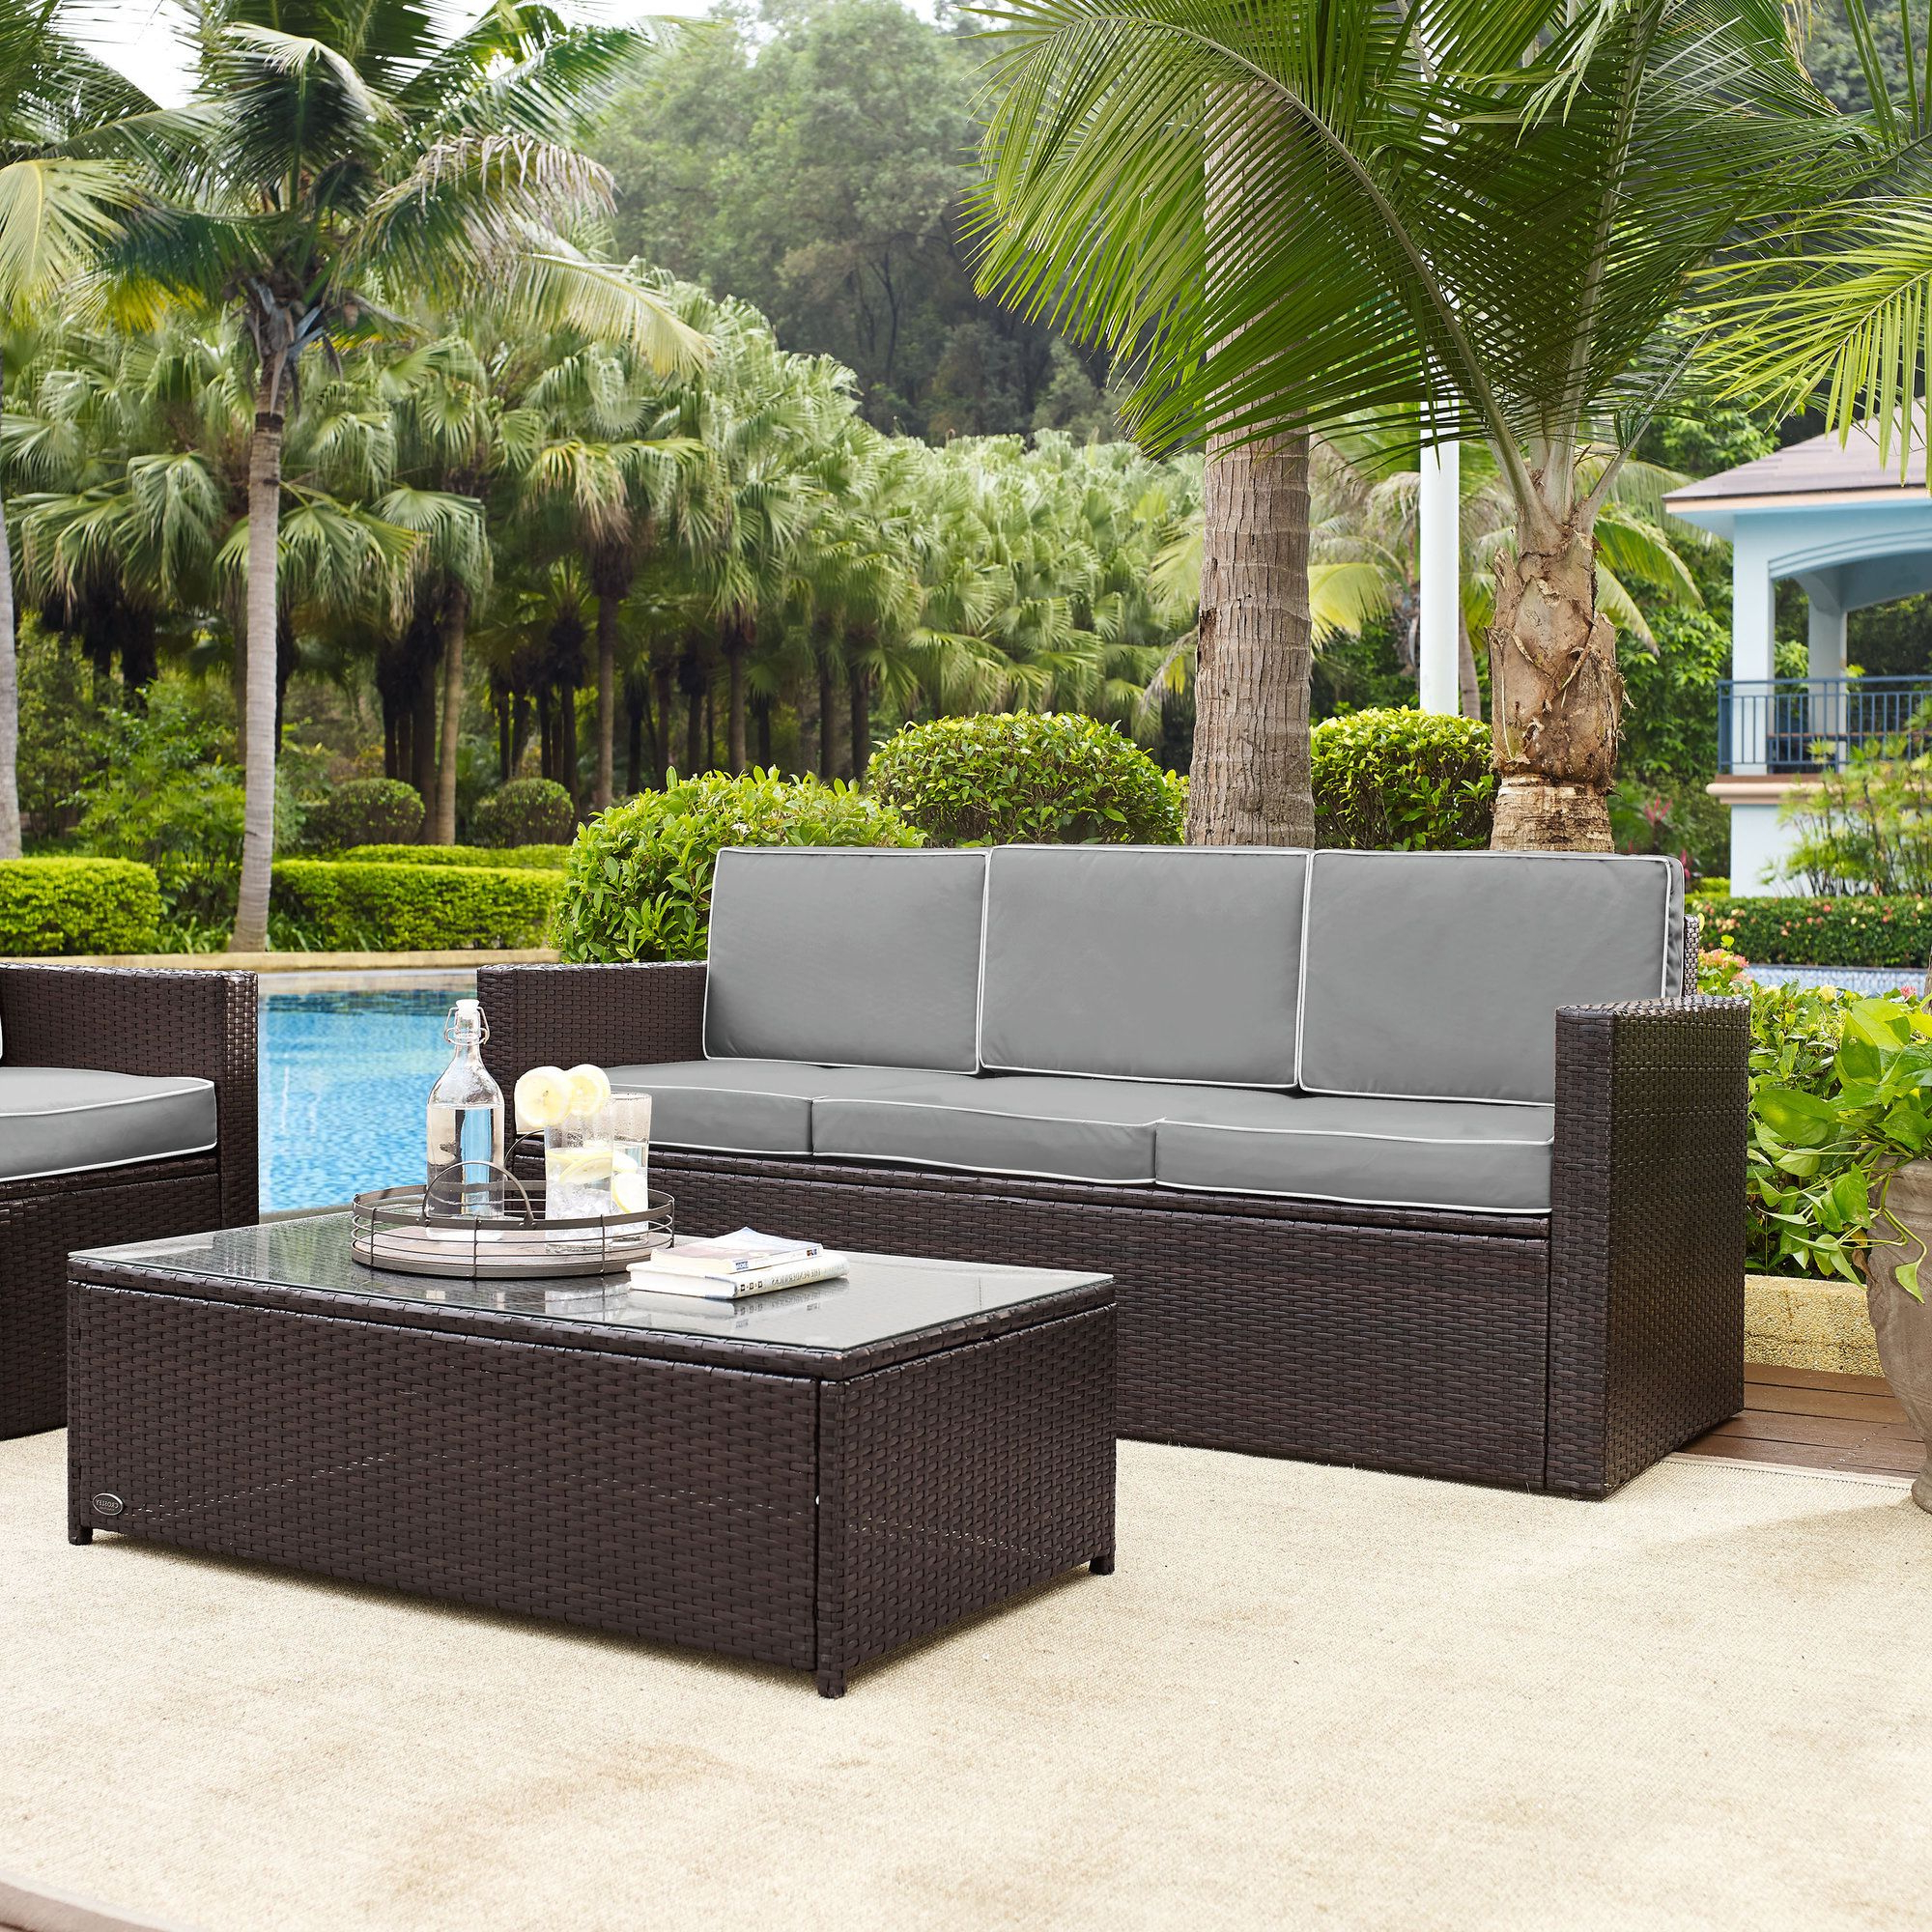 Wicker Sofa Pertaining To Well Liked Belton Patio Sofas With Cushions (View 3 of 25)